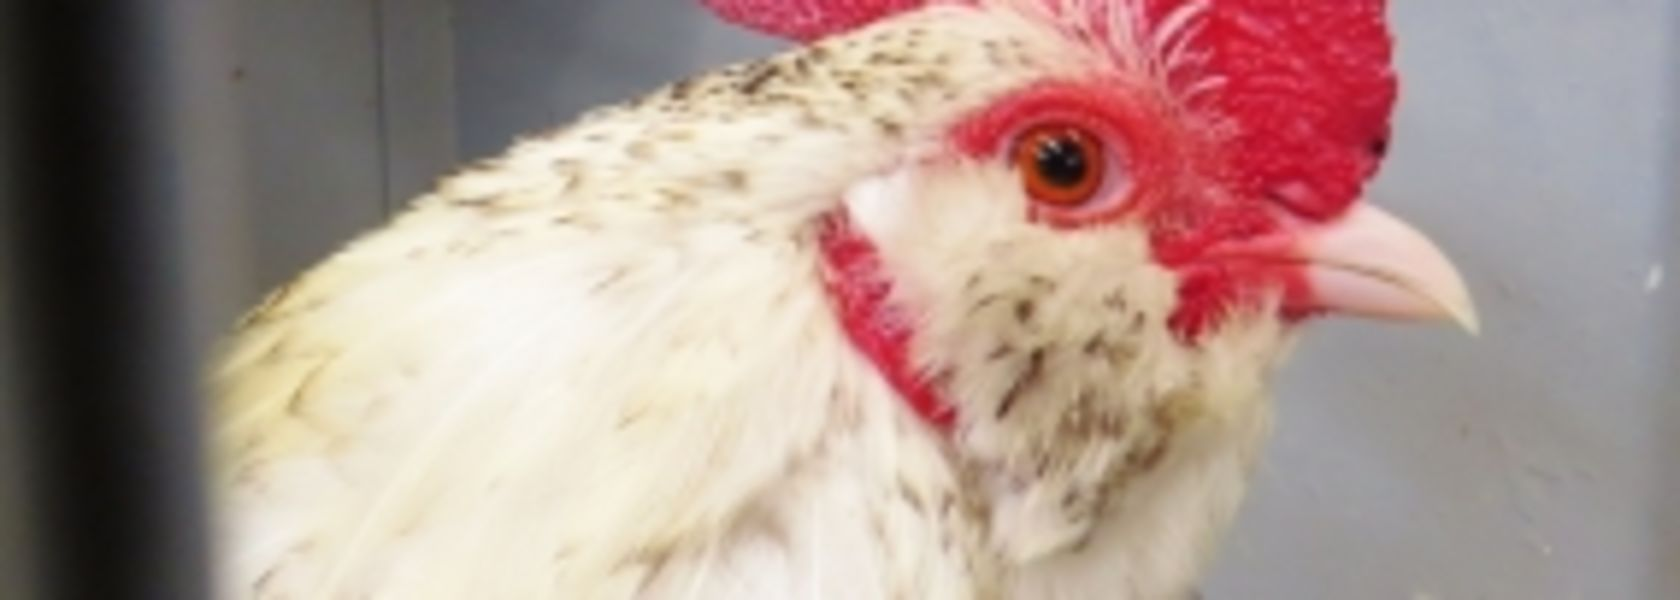 Poultry pinged as most consumed protein by 2020